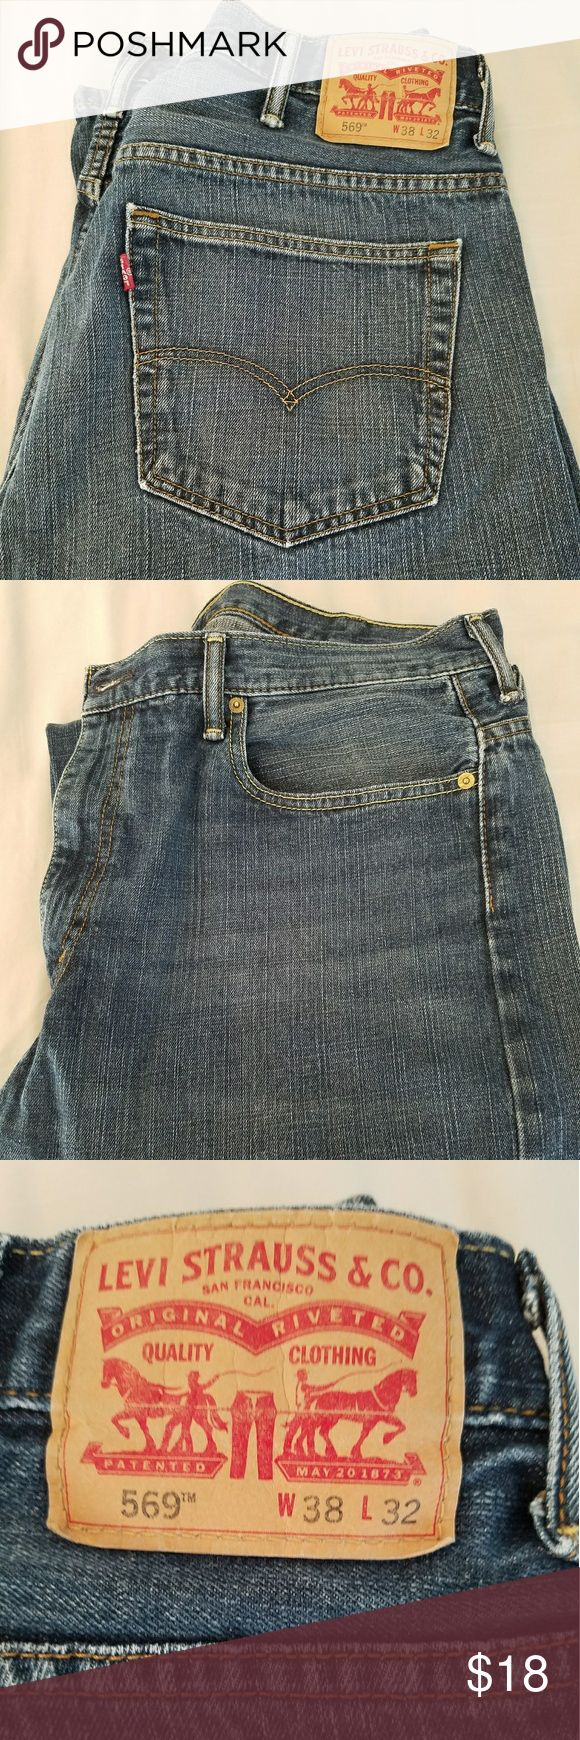 Men's Levi Jeans Relaxed fit jeans in a medium wash. 38 waist 32 inseam. Great condition Levi's Jeans Relaxed